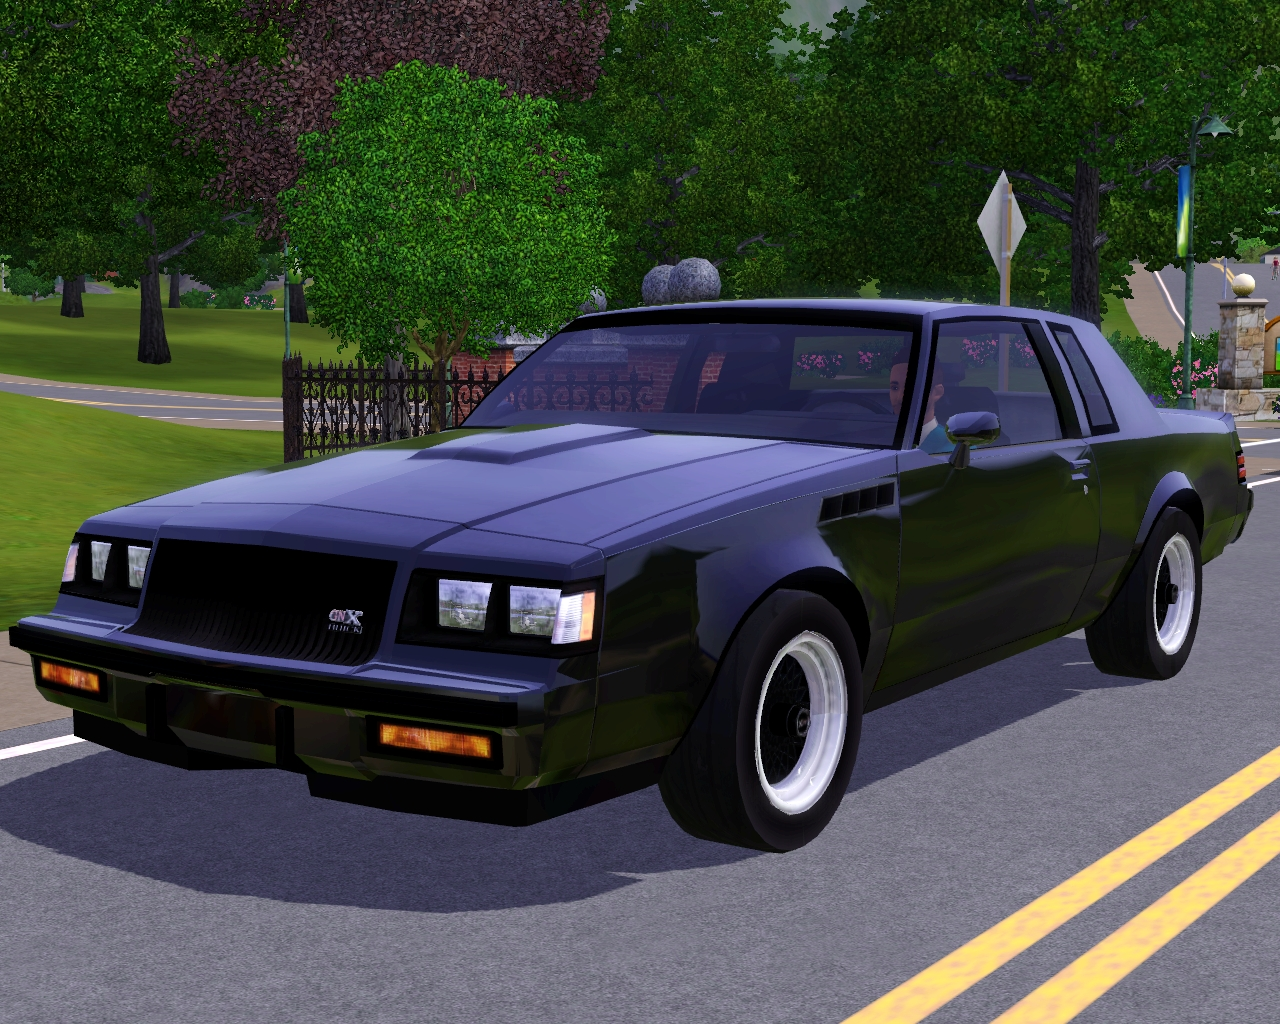 1987 Buick Regal GNX by Fresh-Prince